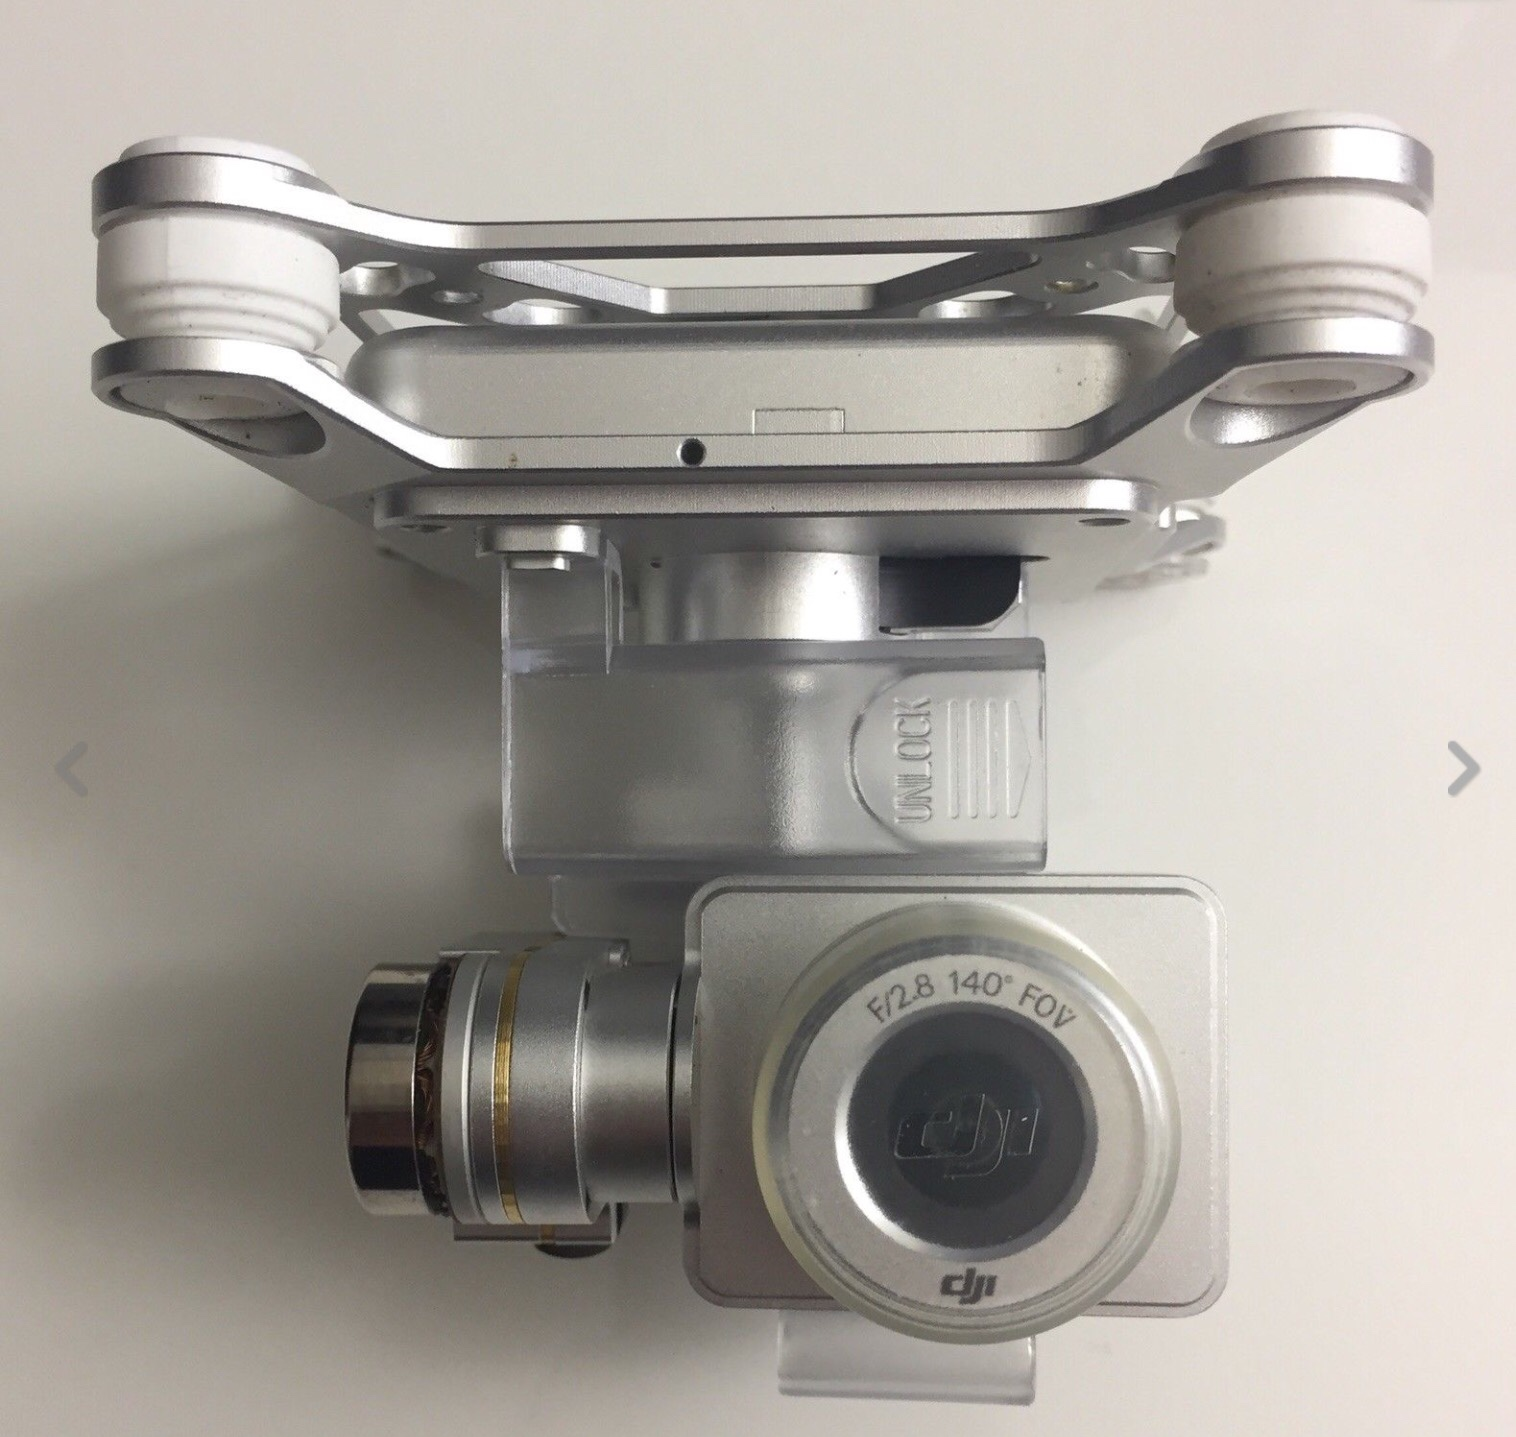 SOLD* Phantom 2 Vision Plus Camera Gimbal for sale | DJI